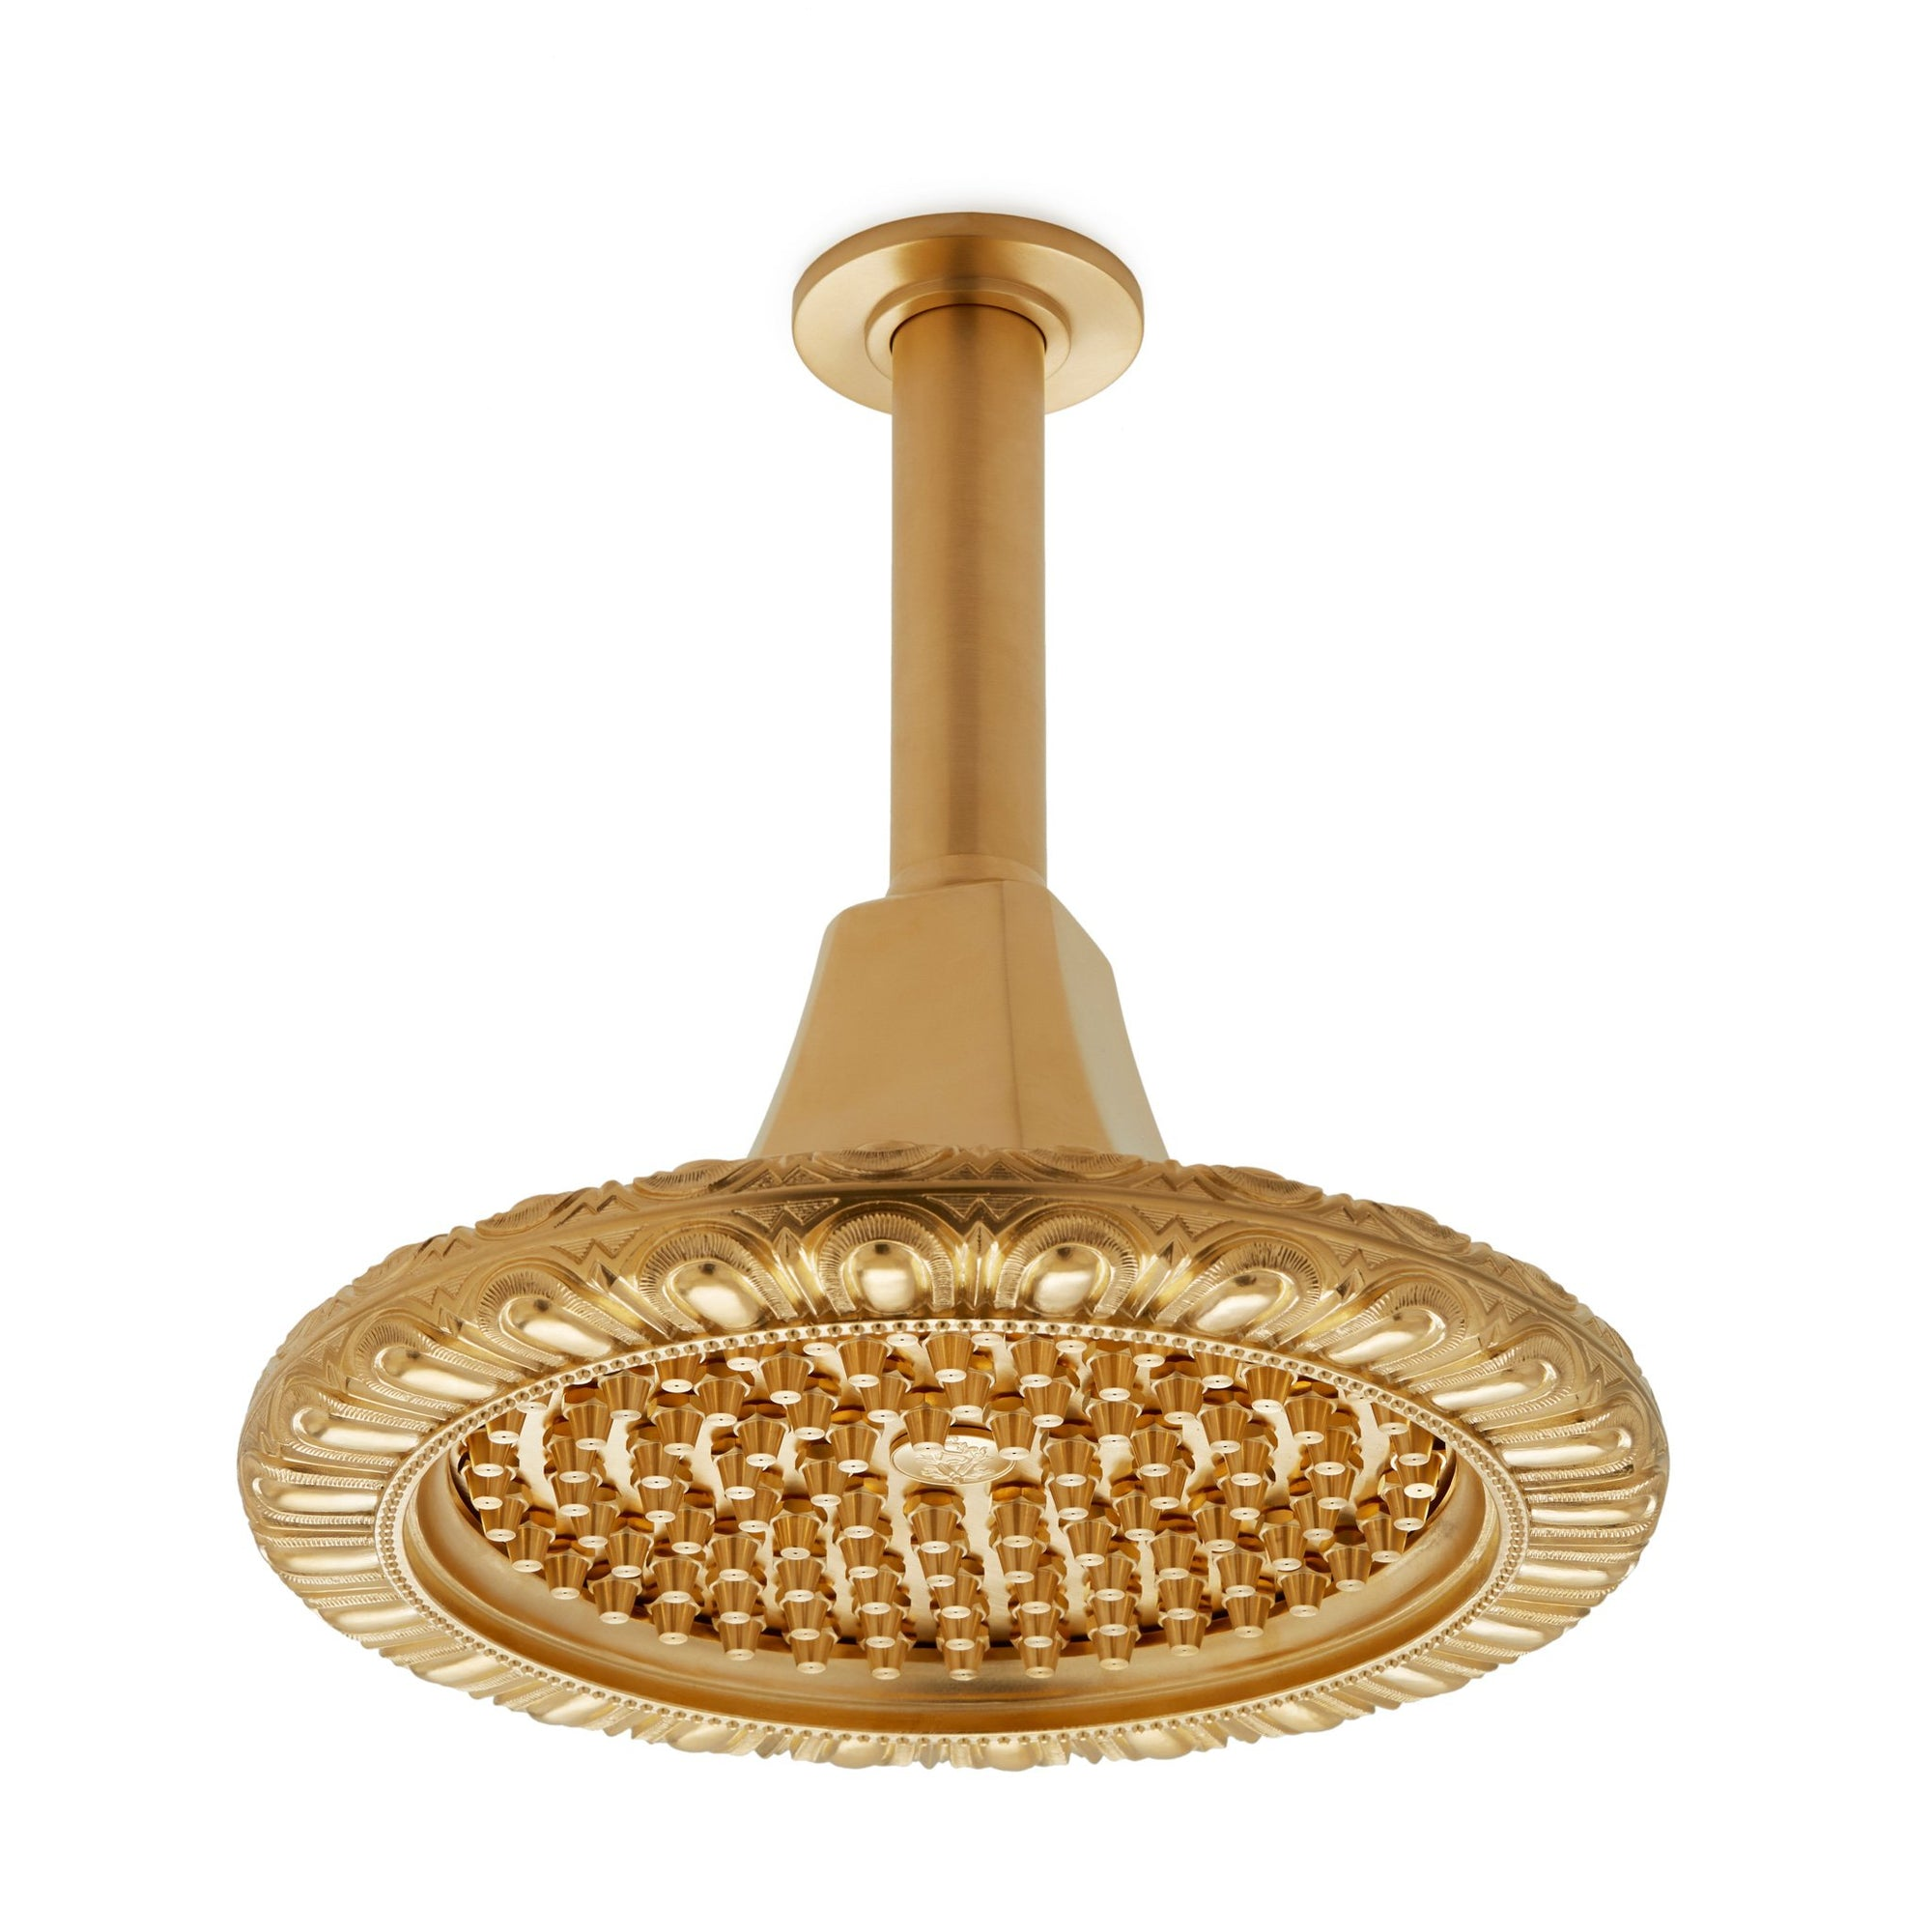 0835CS-N-GP Sherle Wagner International Egg & Dart Rain Dome with Nozzles in Gold Plate metal finish